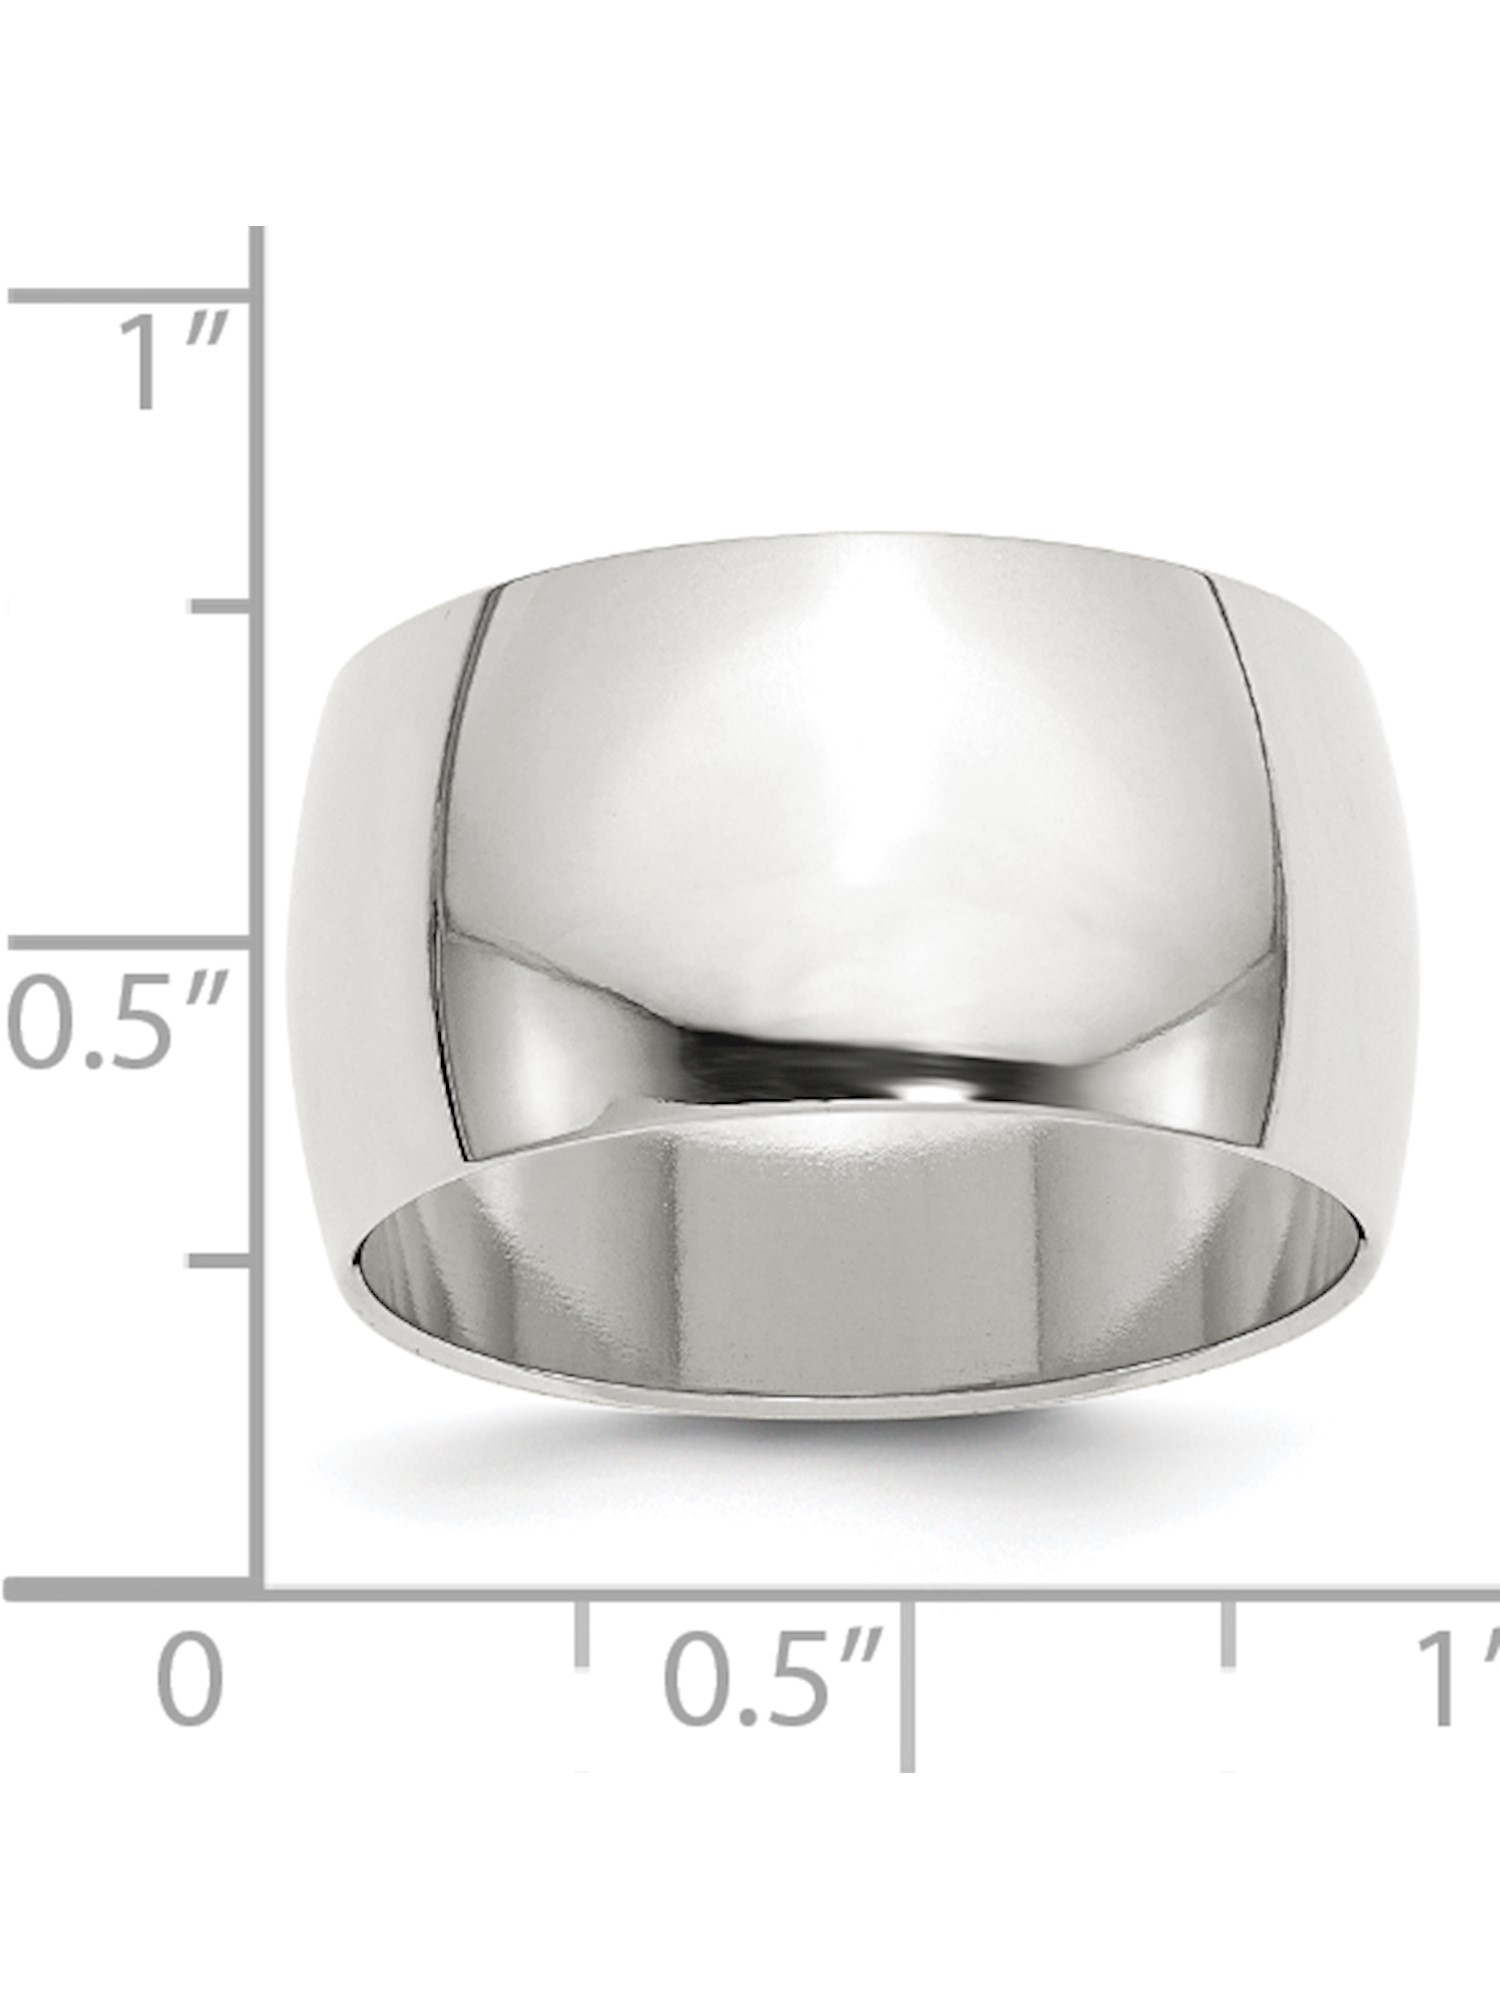 Wedding Bands Classic Bands Flat Bands SS 12mm Flat Size 10 Band Size 6.5